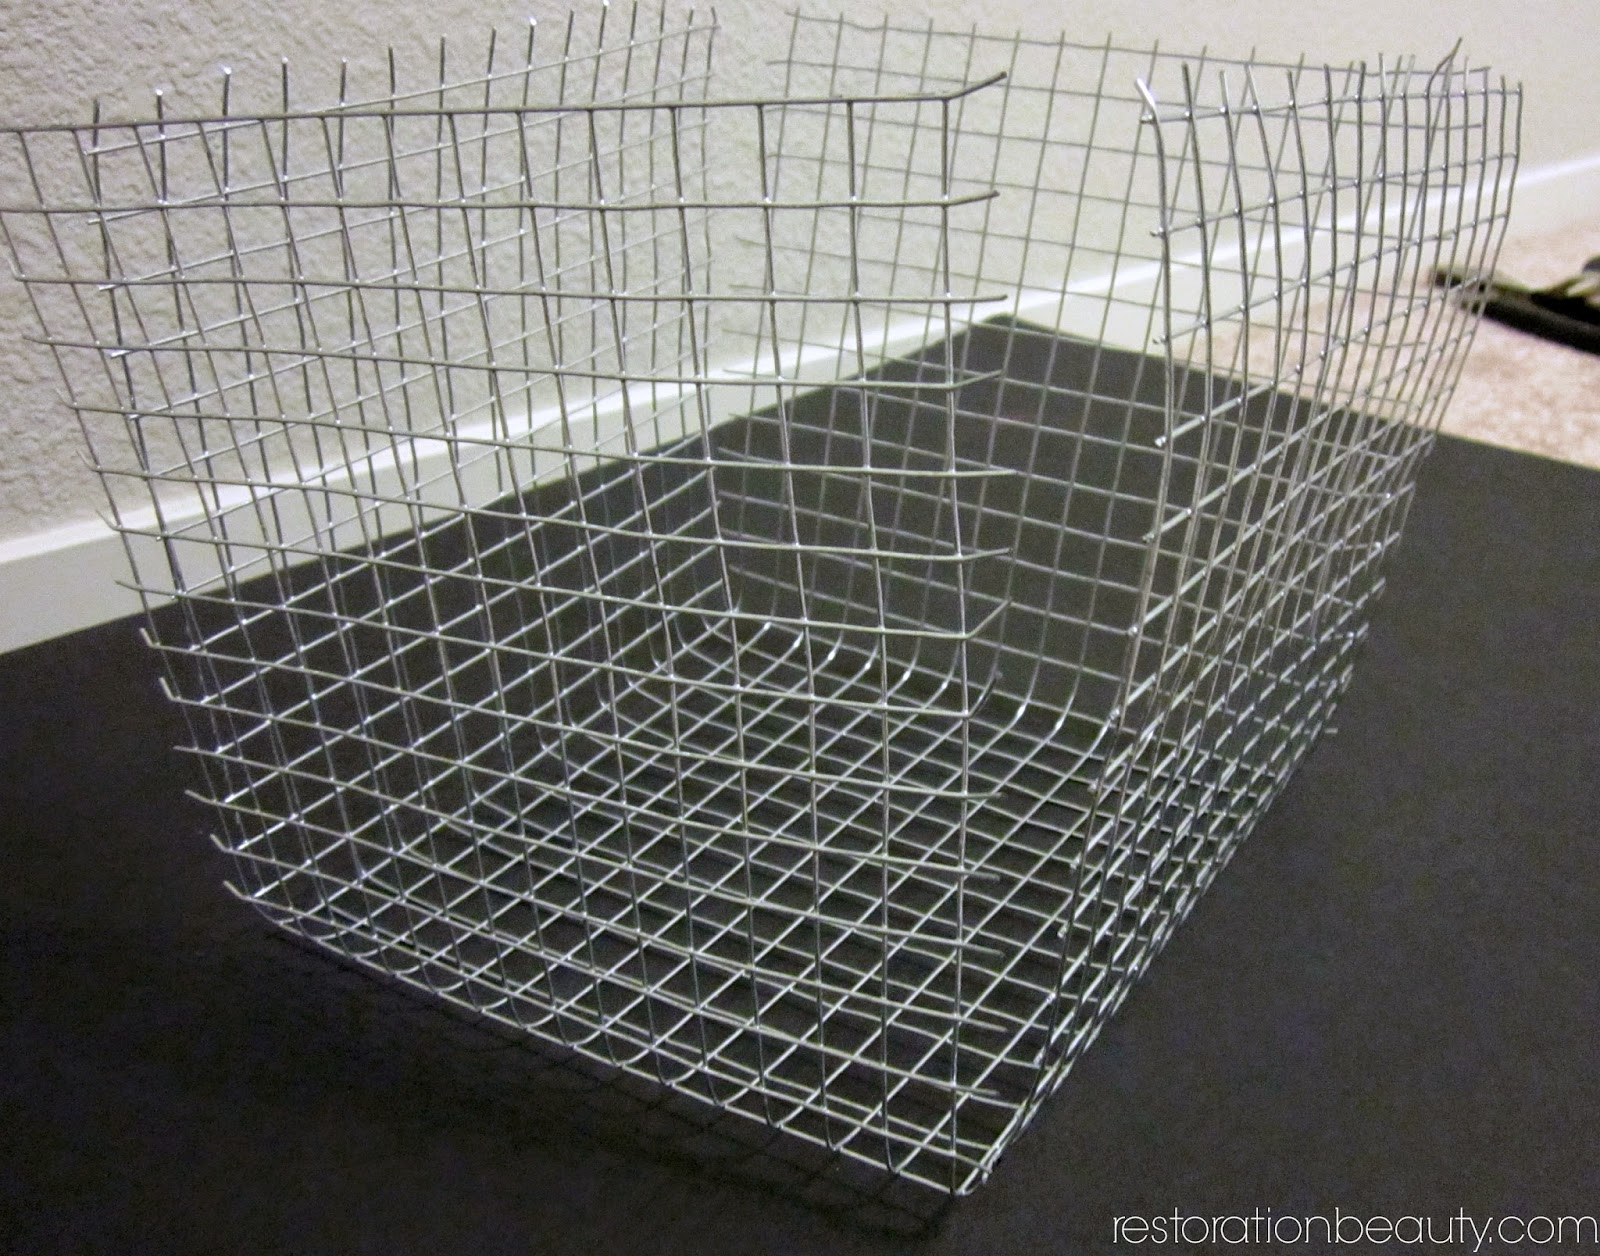 restoration beauty diy wire basket for under 6. Black Bedroom Furniture Sets. Home Design Ideas